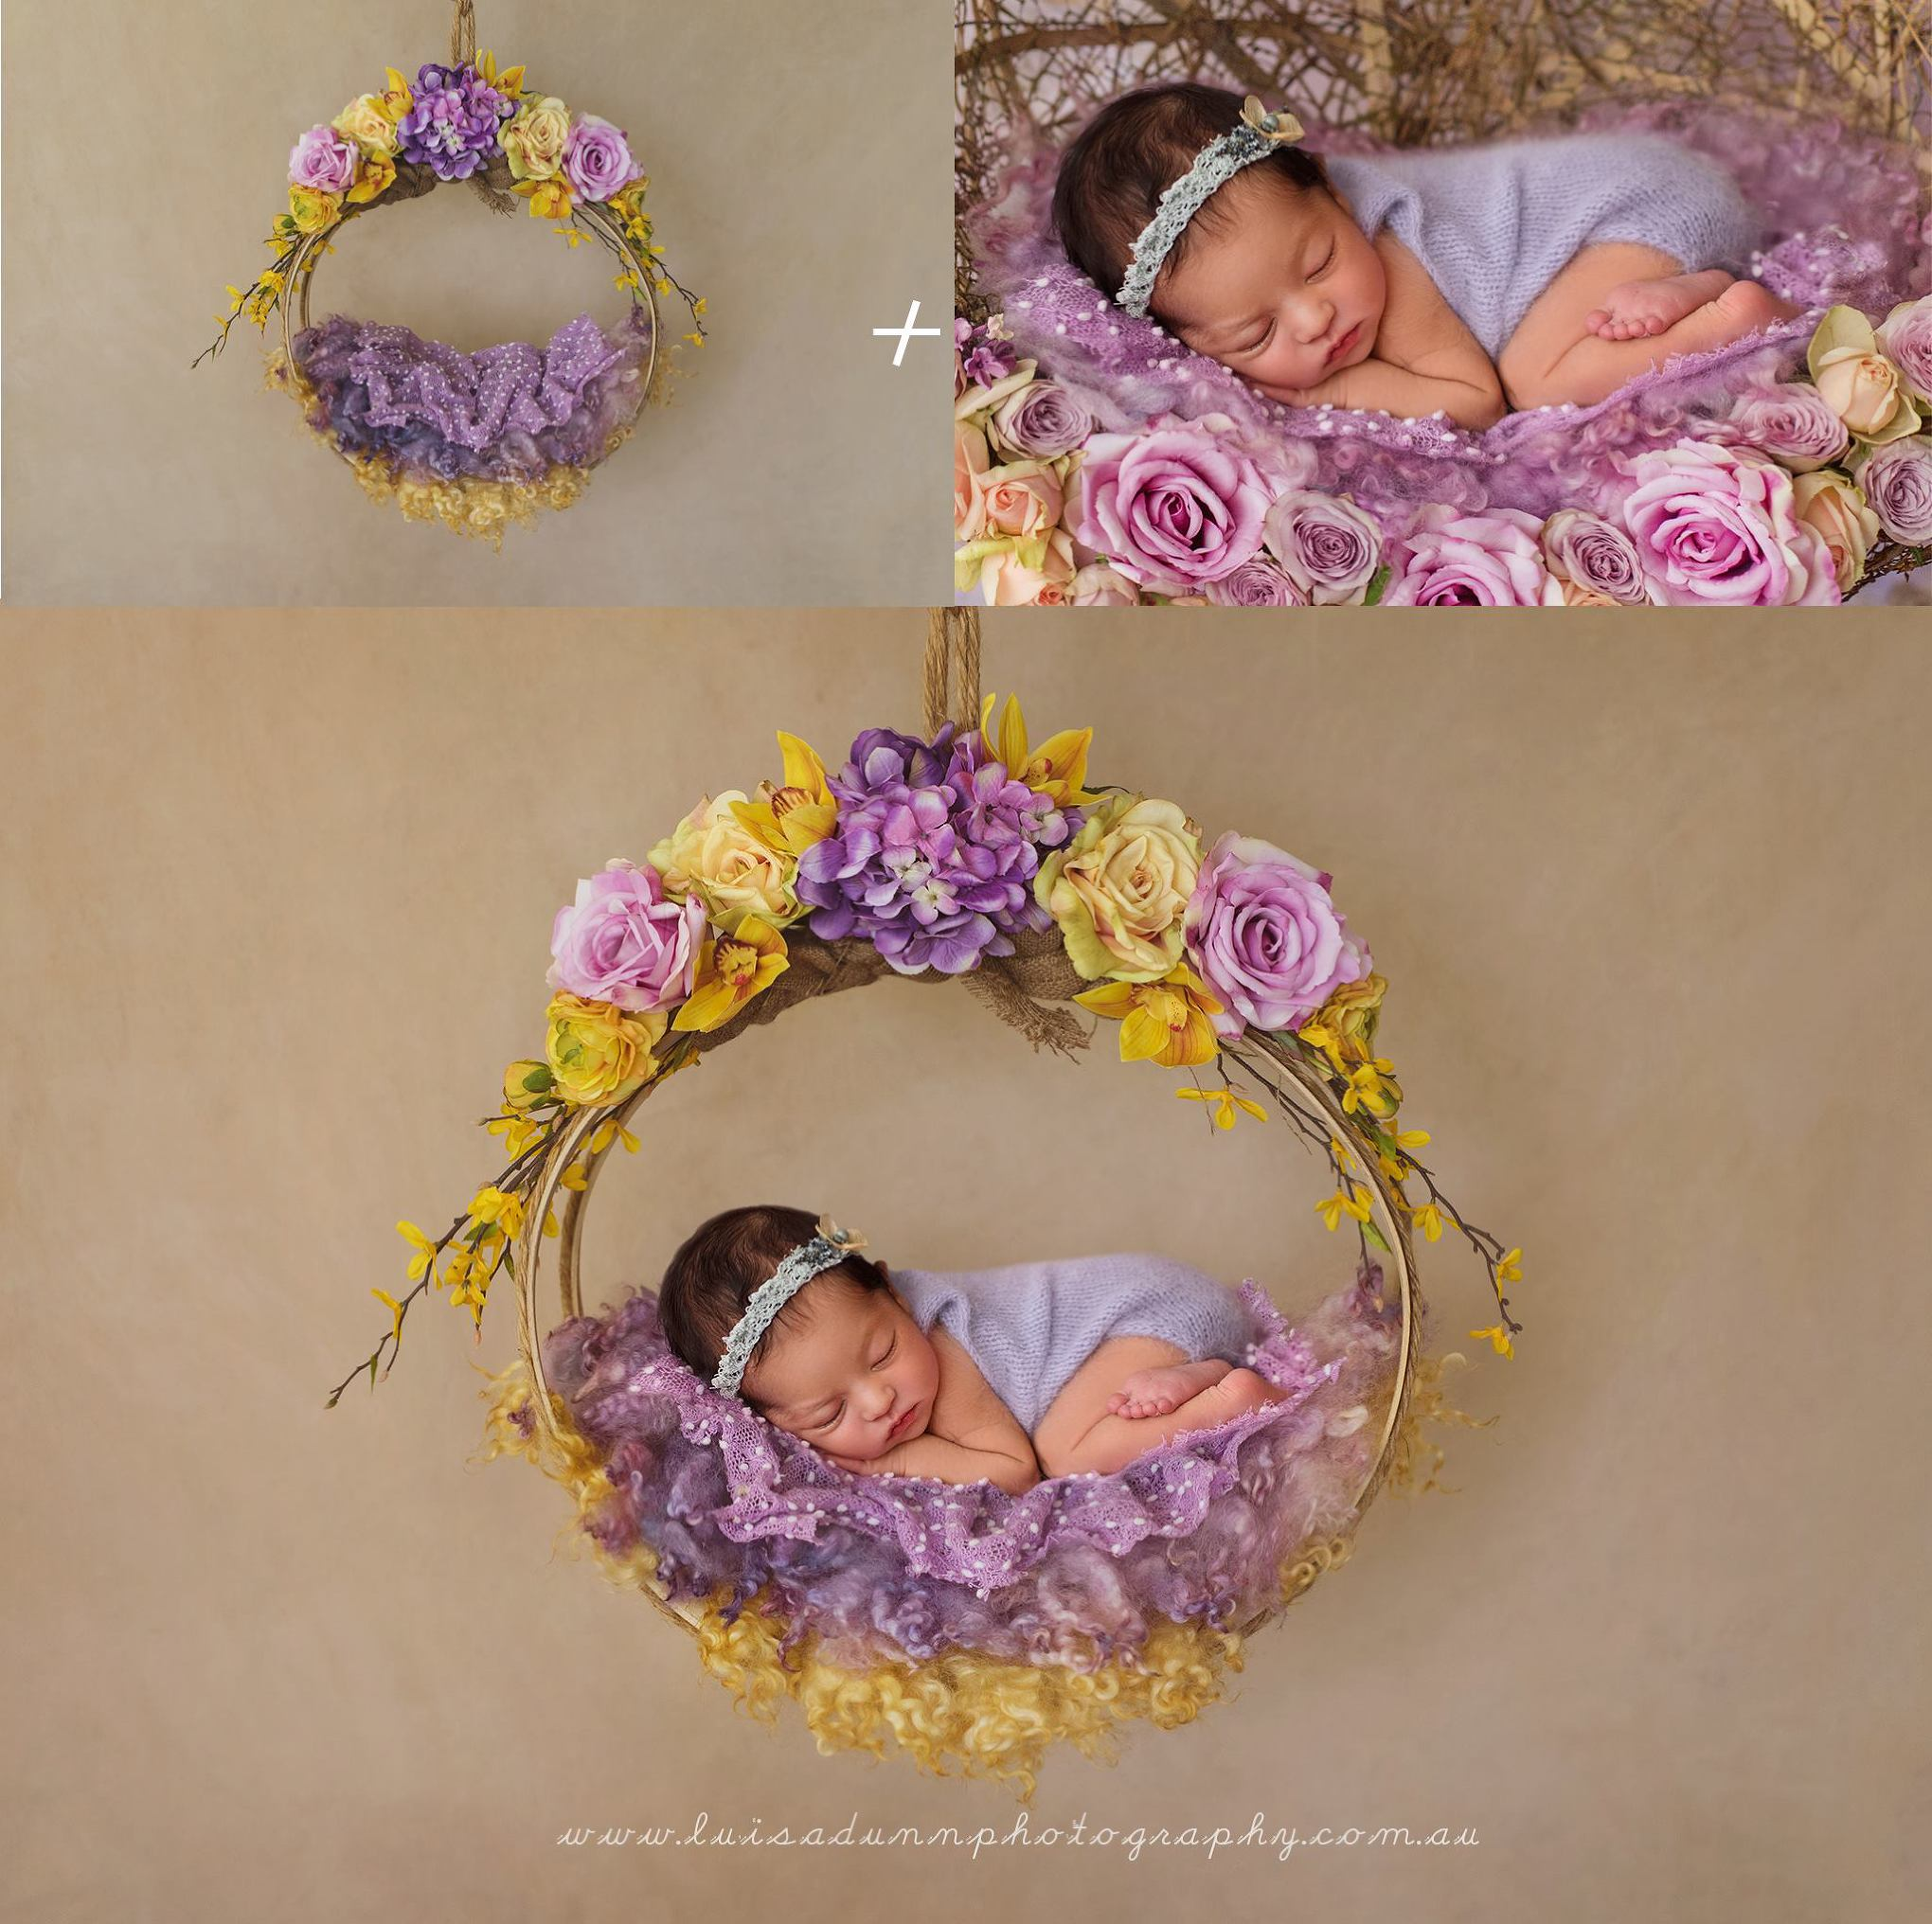 Newborn Digital Backgrounds Photoshop Templates For Photography 2040x2032